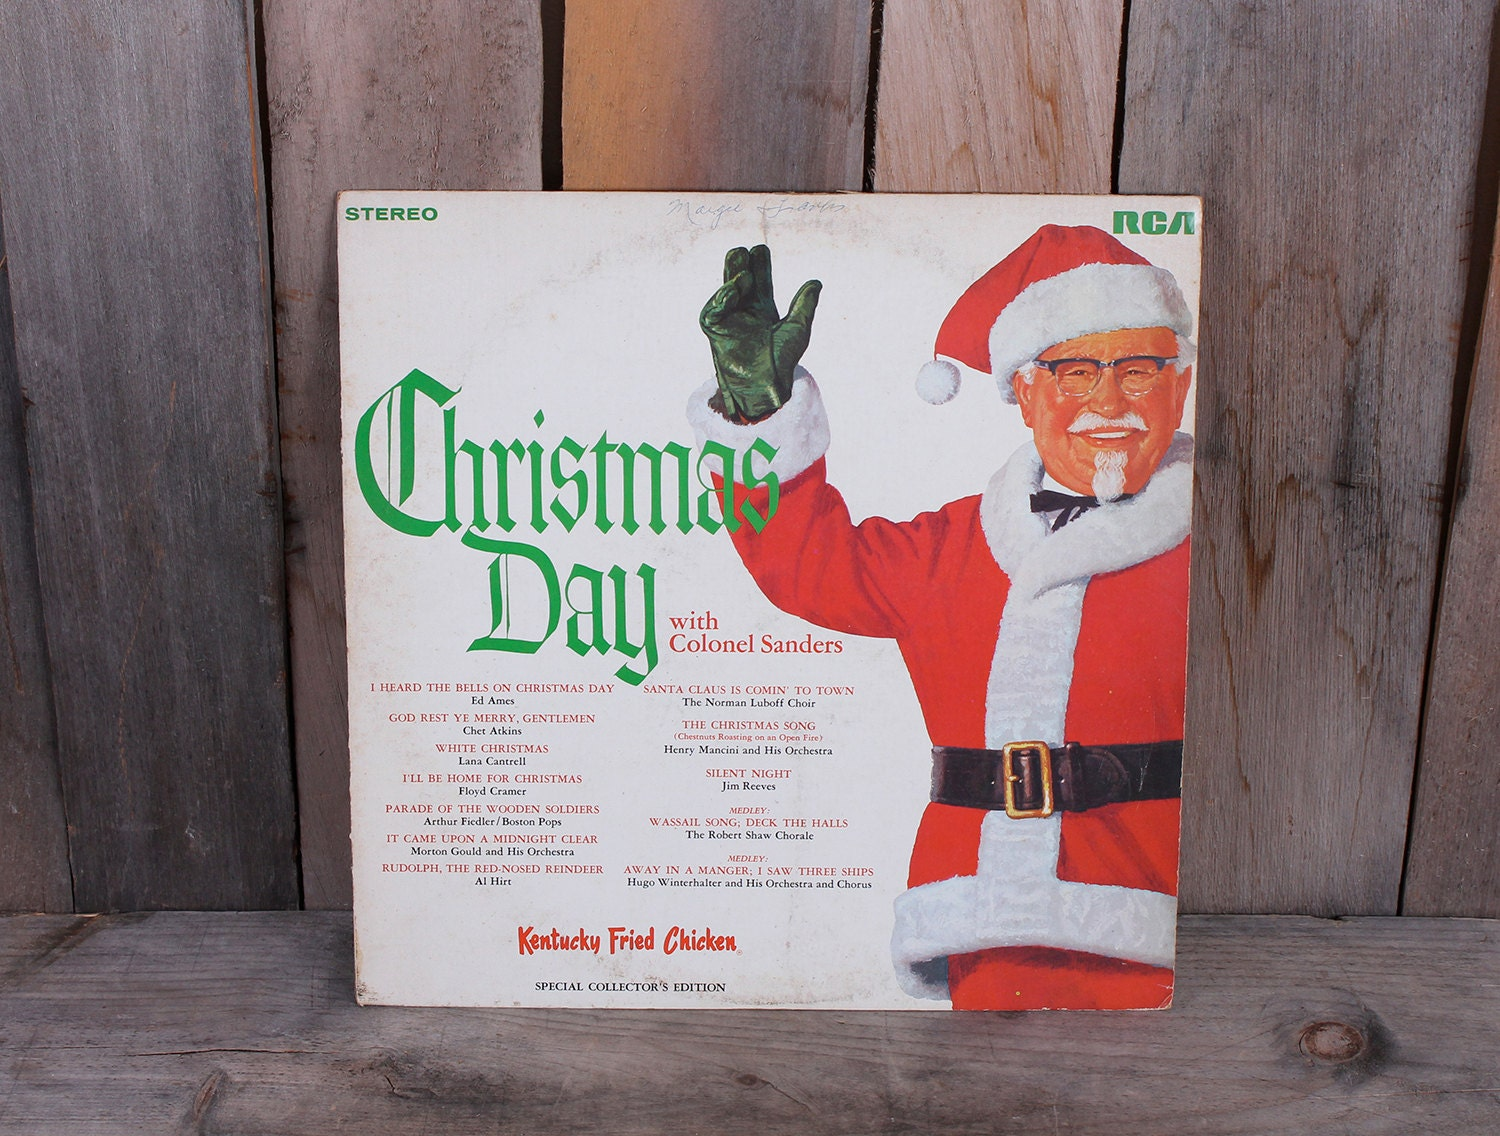 1968 Christmas Day with Colonel Sanders Kentucky Fried Chicken   Etsy